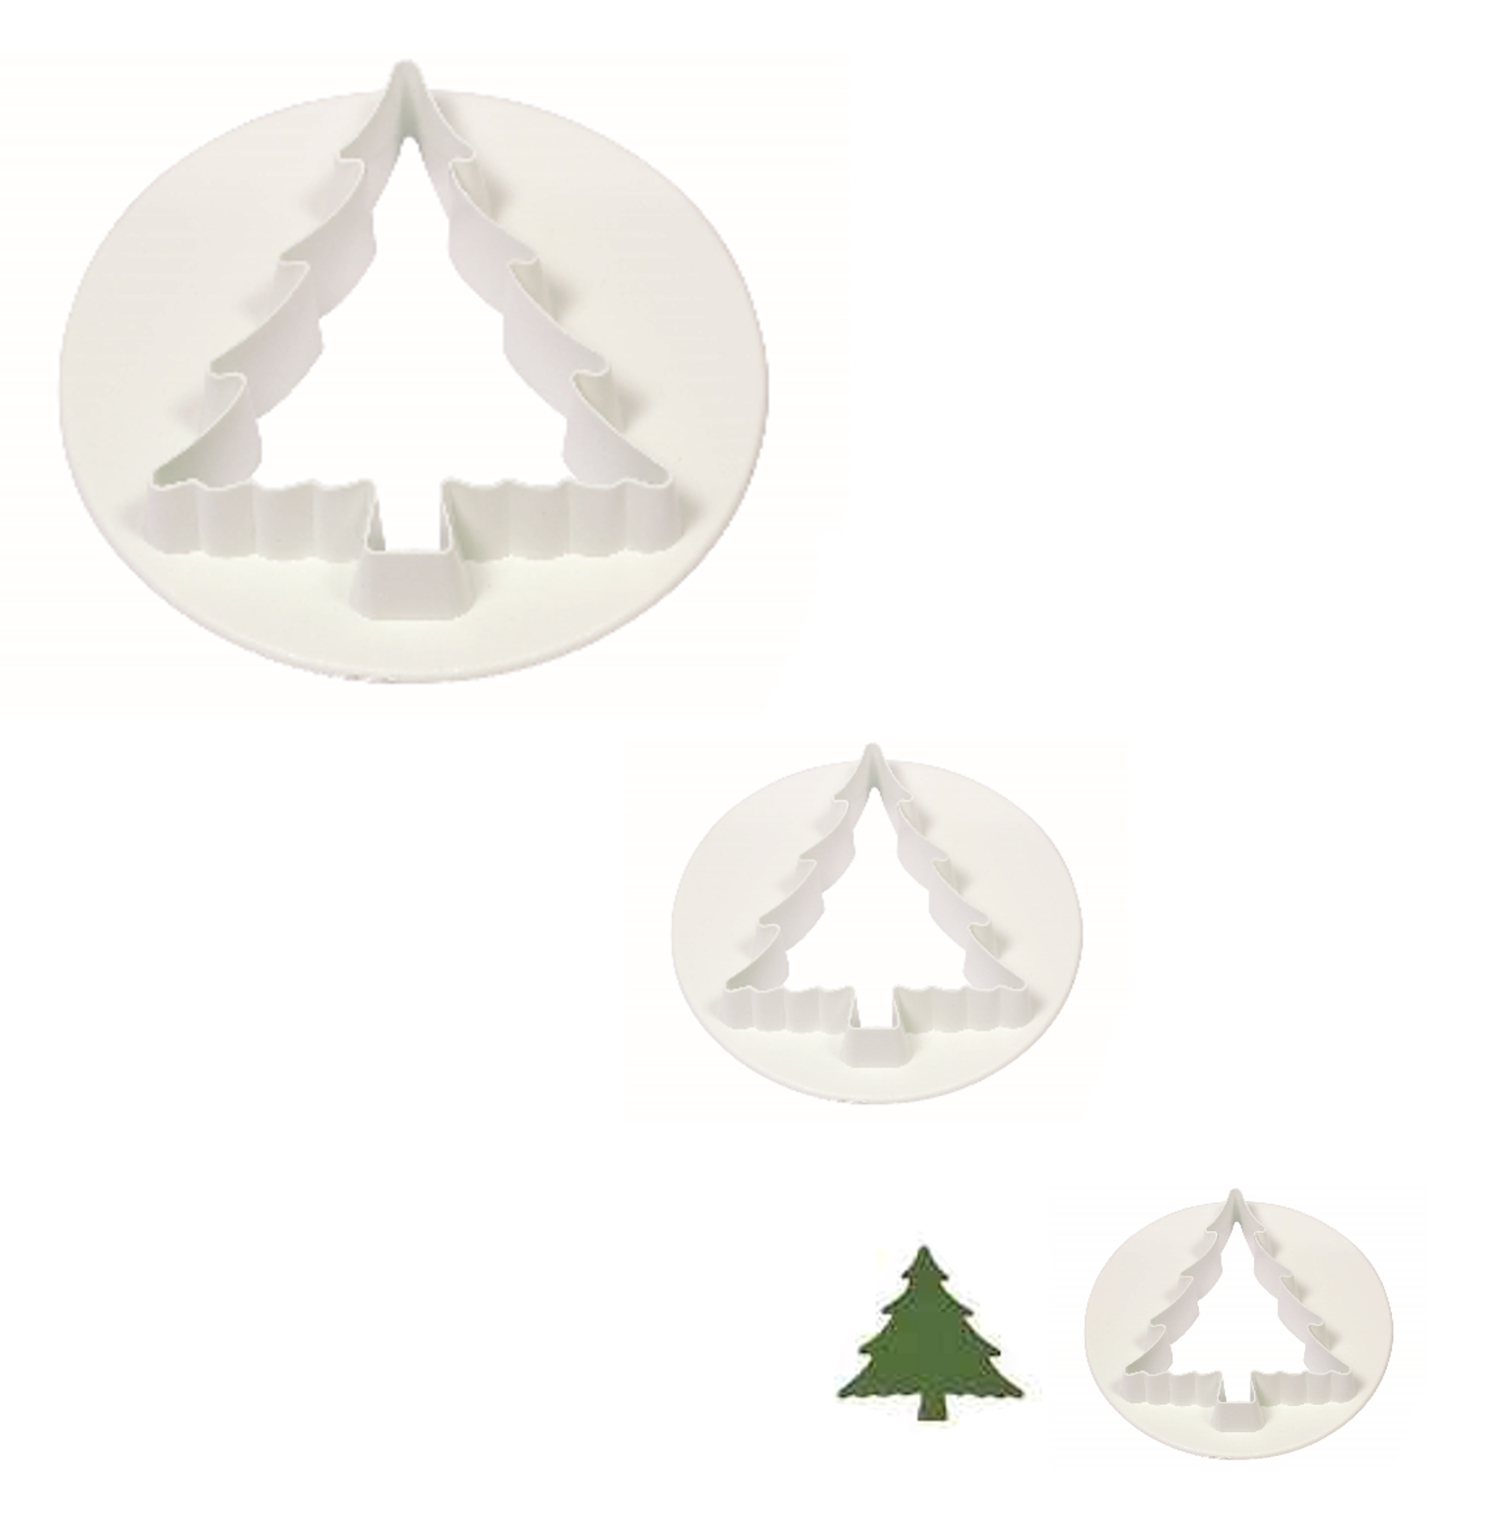 Christmas Tree Cutout.Details About Pme Christmas Tree Plastic Icing Cutout Cutter Sugarcraft Cake Decorating Tool